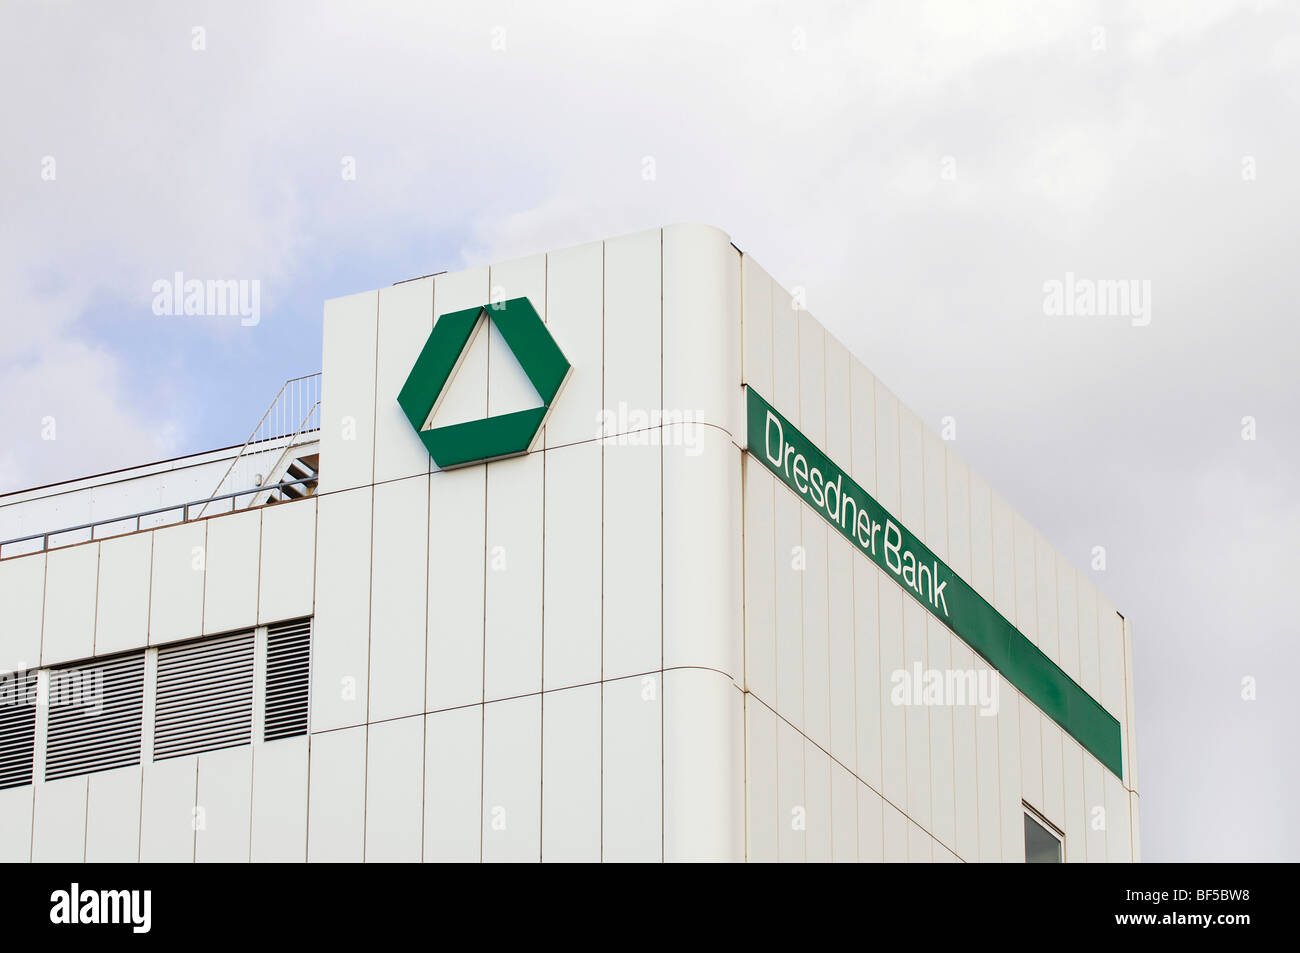 Dresdner Bank logo and signage on a commercial building, Duisburg, North Rhine-Westphalia, Germany, Europe - Stock Image